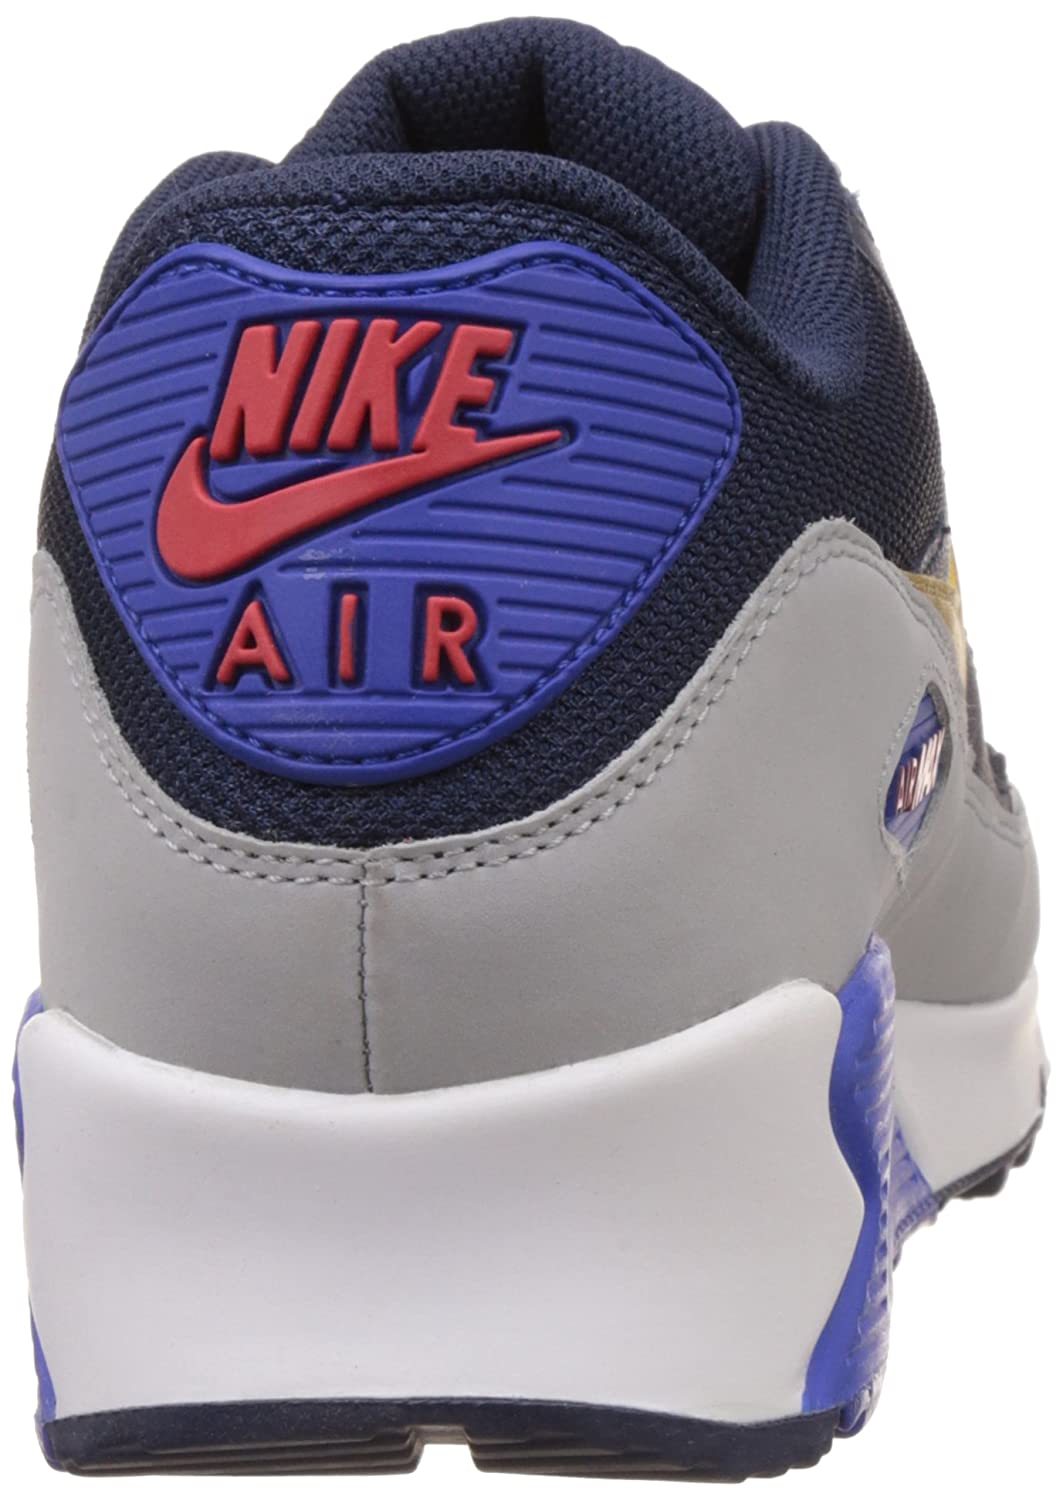 Classic Nike Men's Air Max 90 Essential Mesh Blue Grey Running Shoes 537384 409